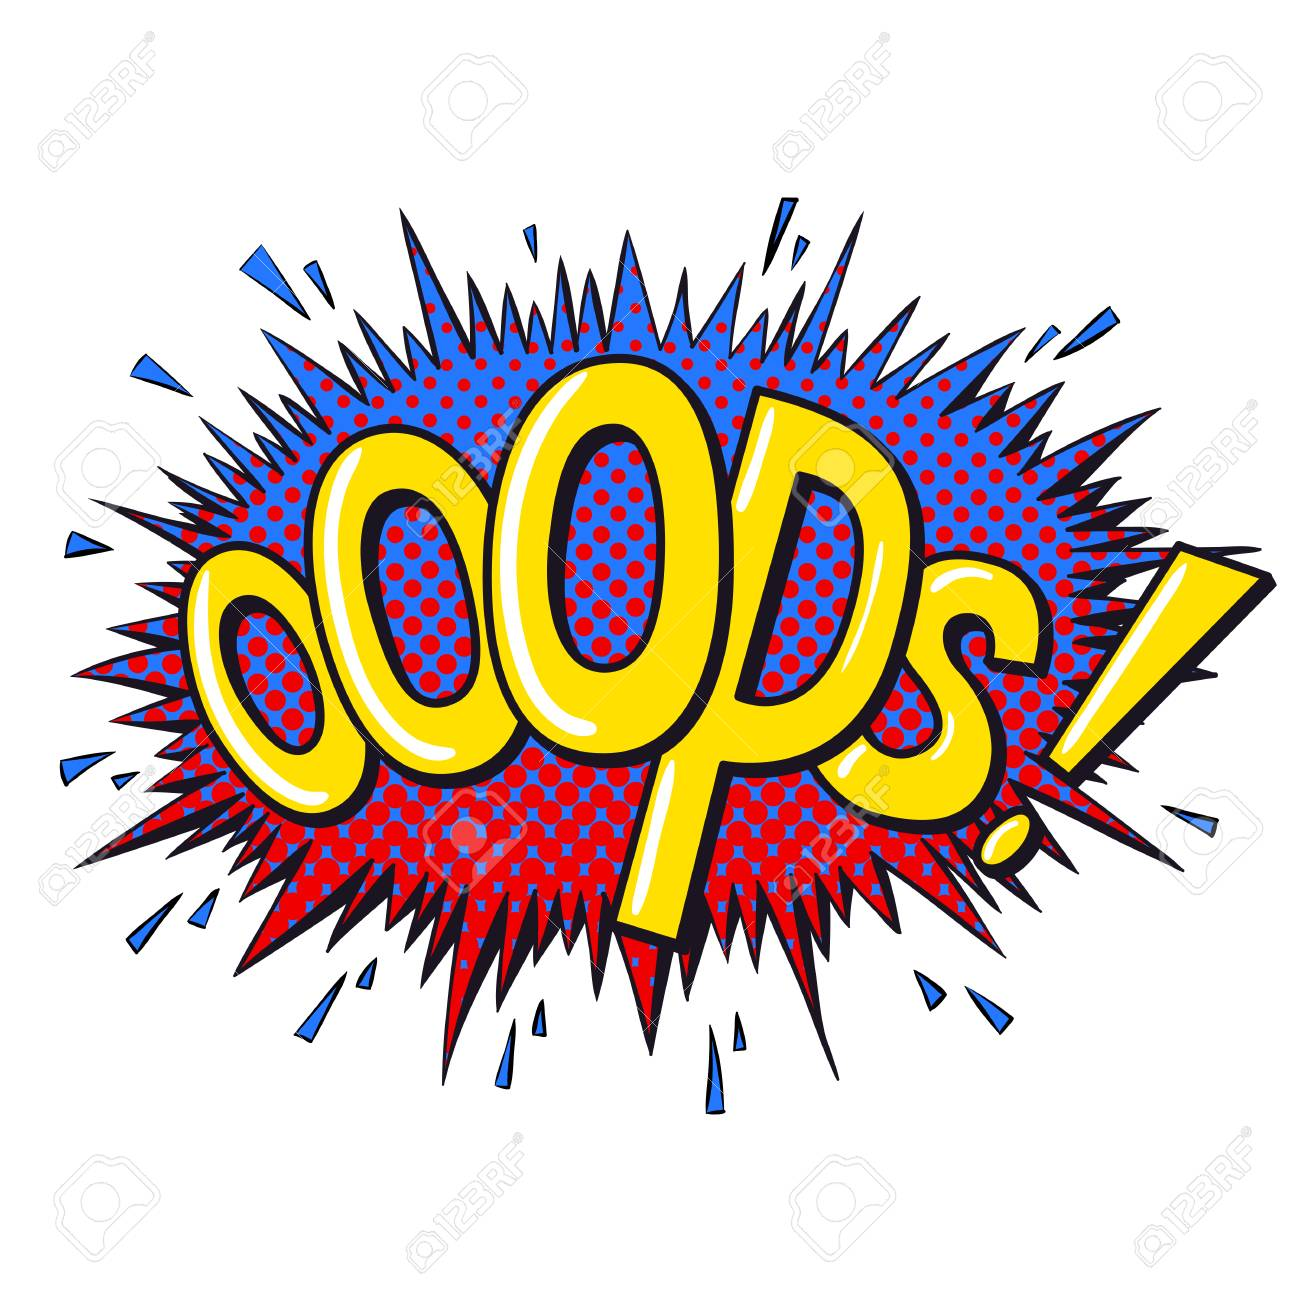 Comics text sound effects  Bubble speech phrase Ooops  Vector